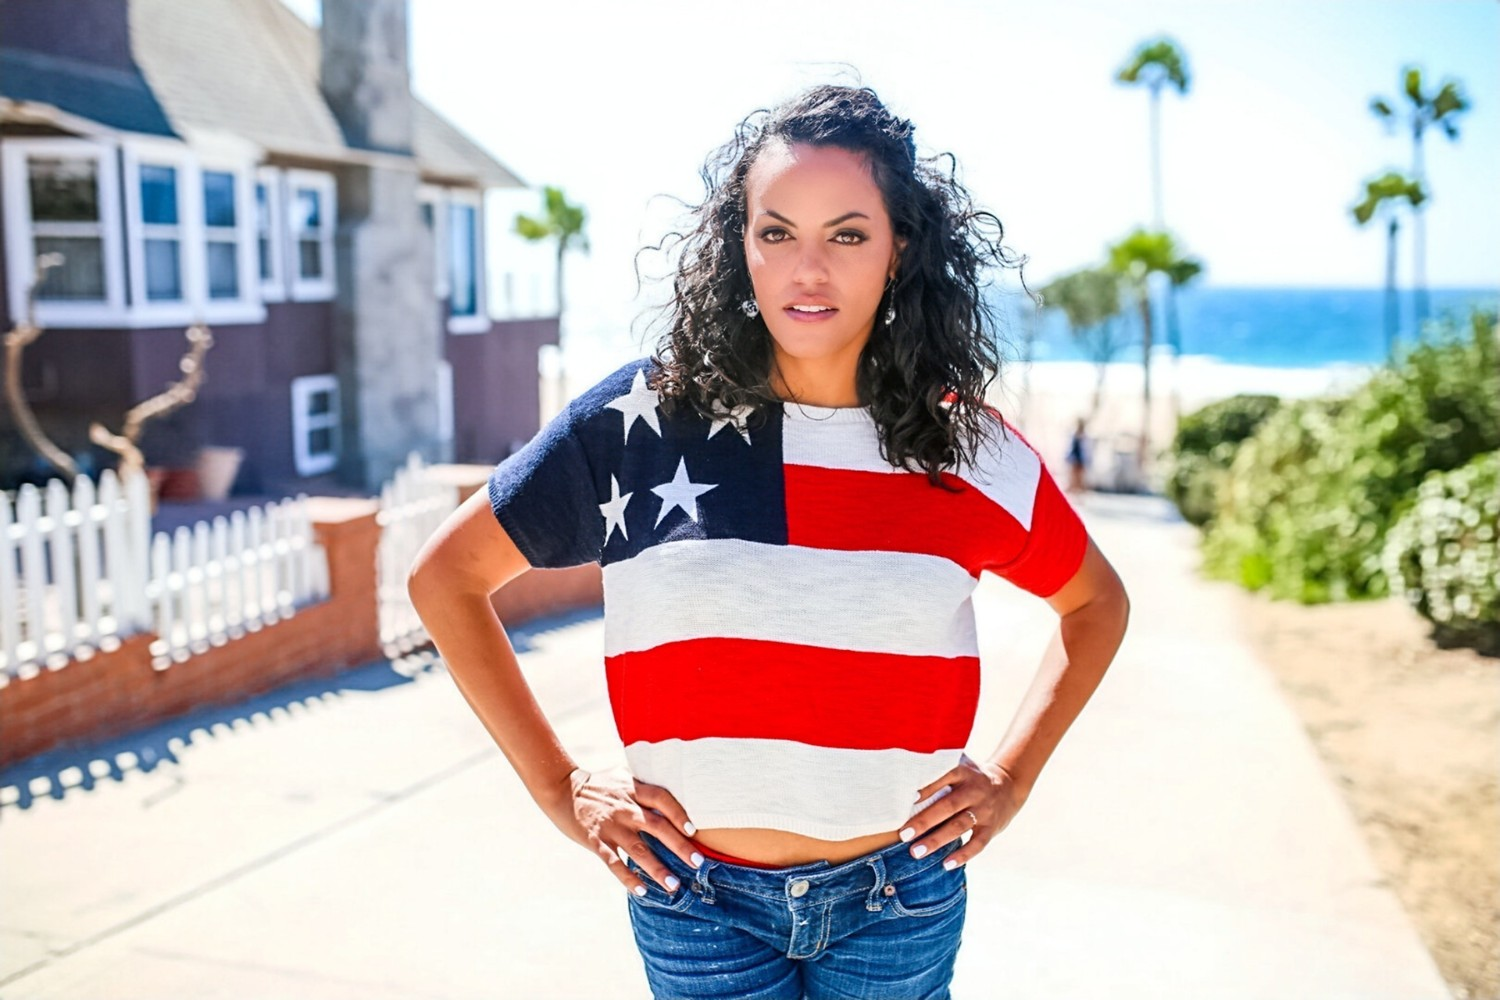 Karisma Shackelford creator of the Moving Forward event by Wanderful, standing in her USA flag shirt